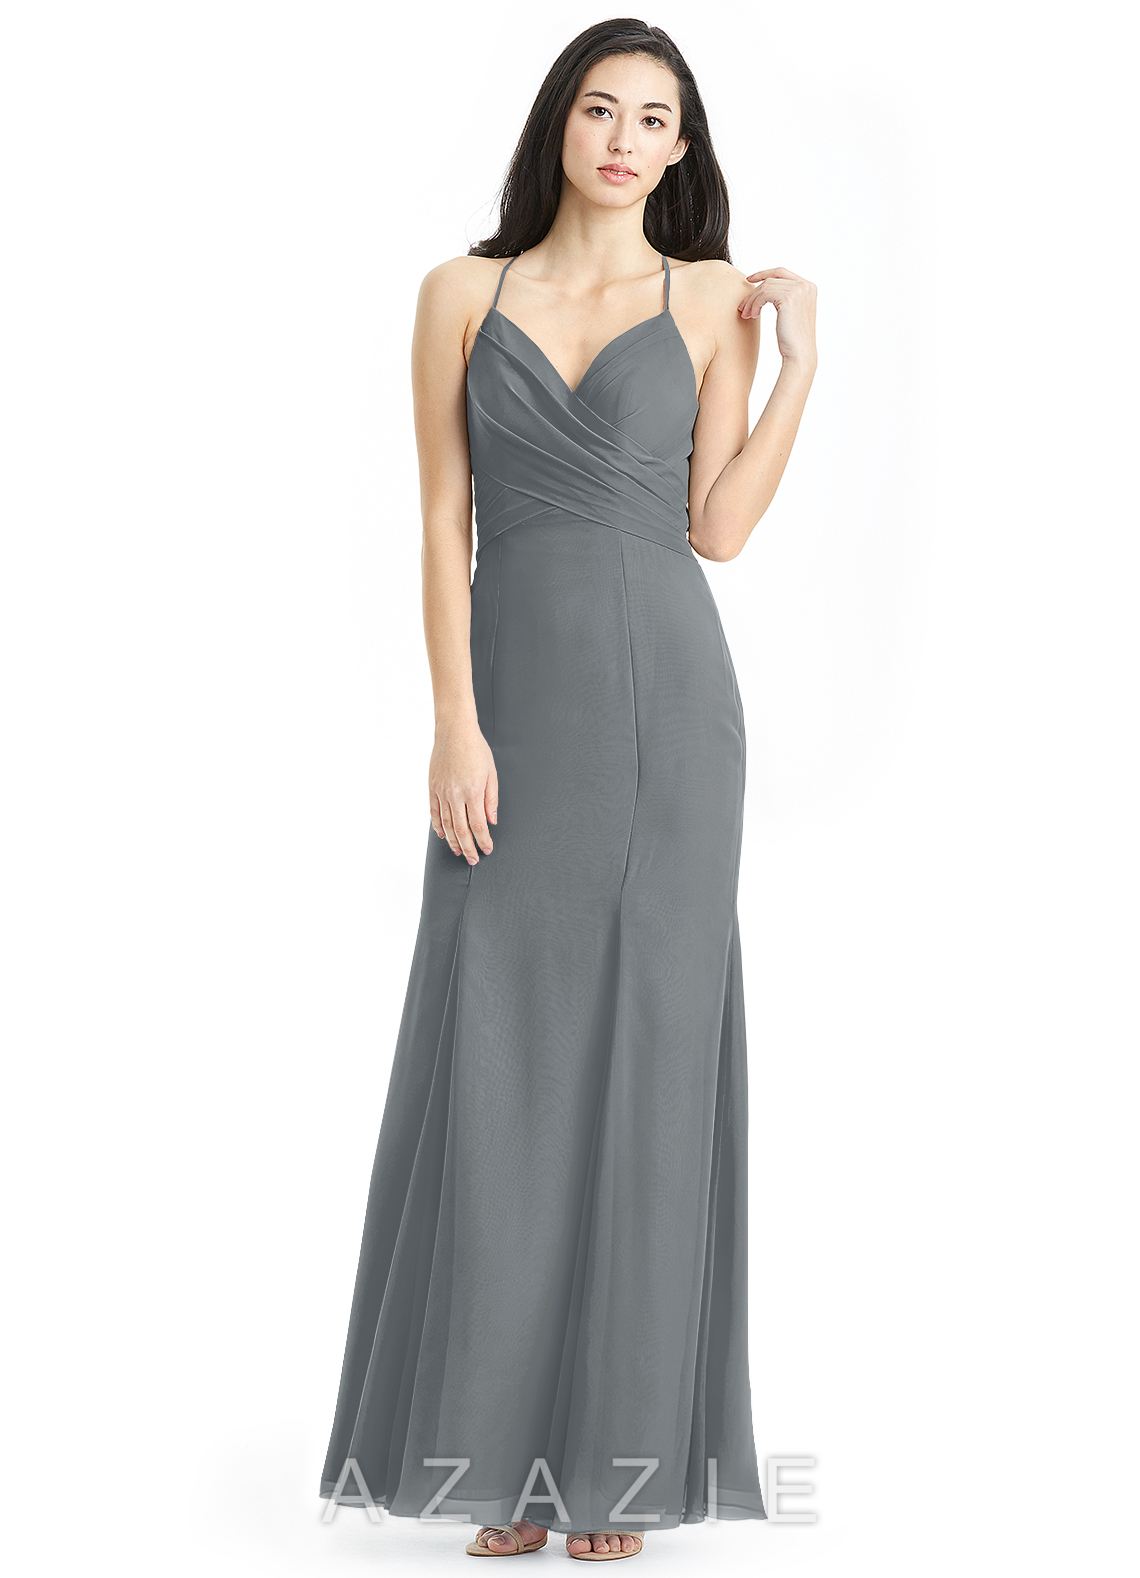 Azazie carolina bridesmaid dress azazie color steel grey ombrellifo Choice Image